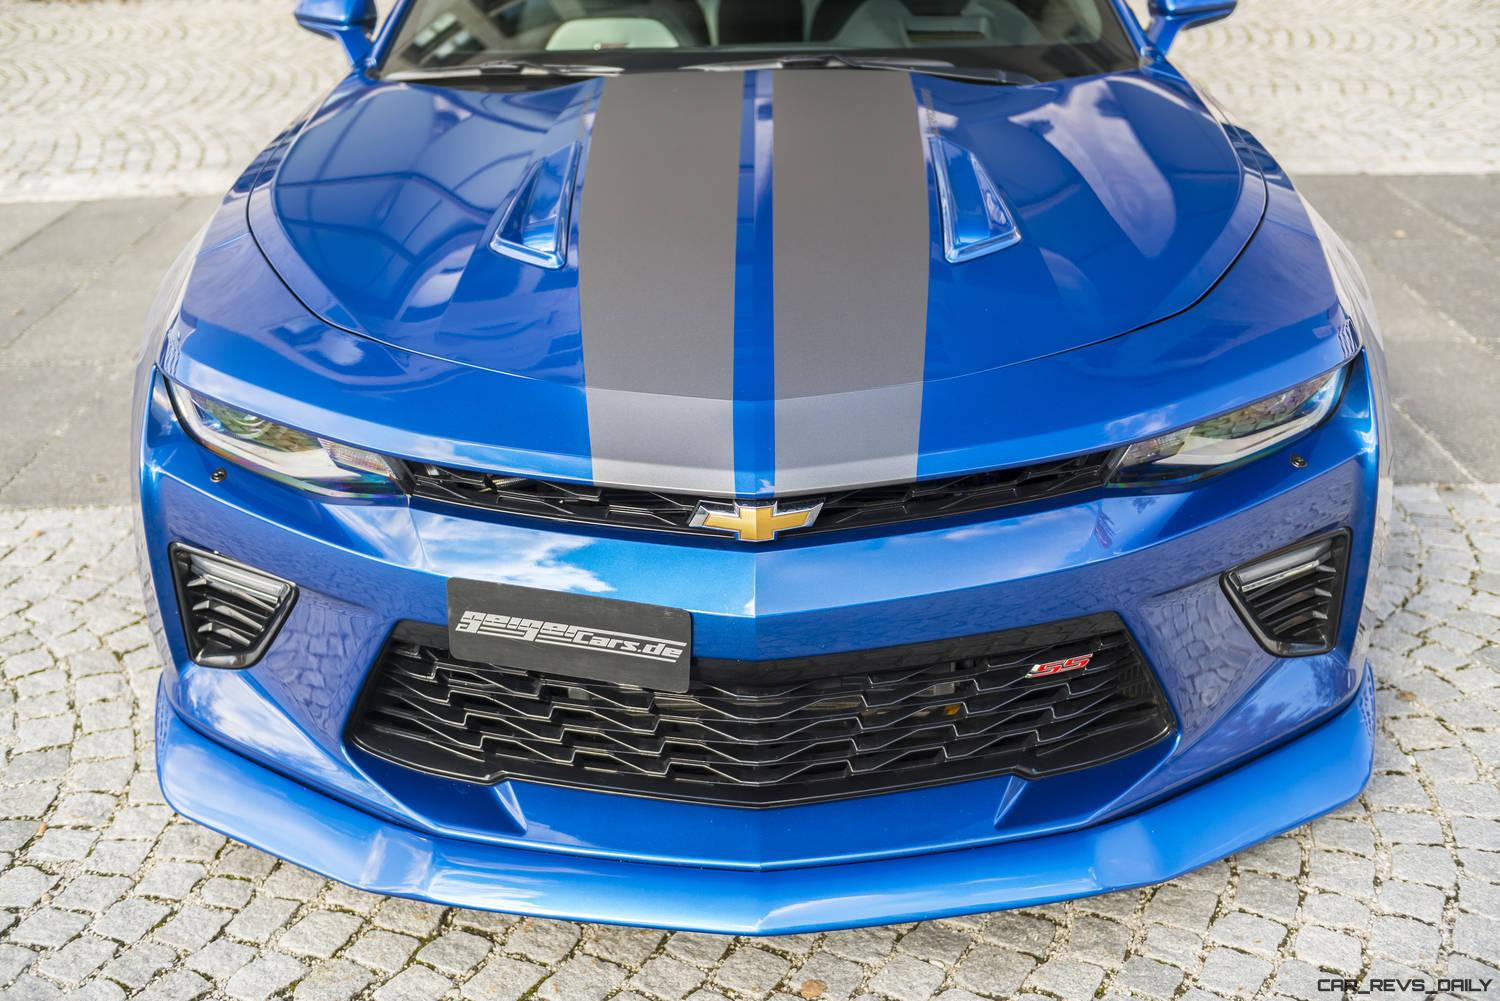 csm_geigercars-camaro-50th-anni-stripes_19_79f3b9a8ad